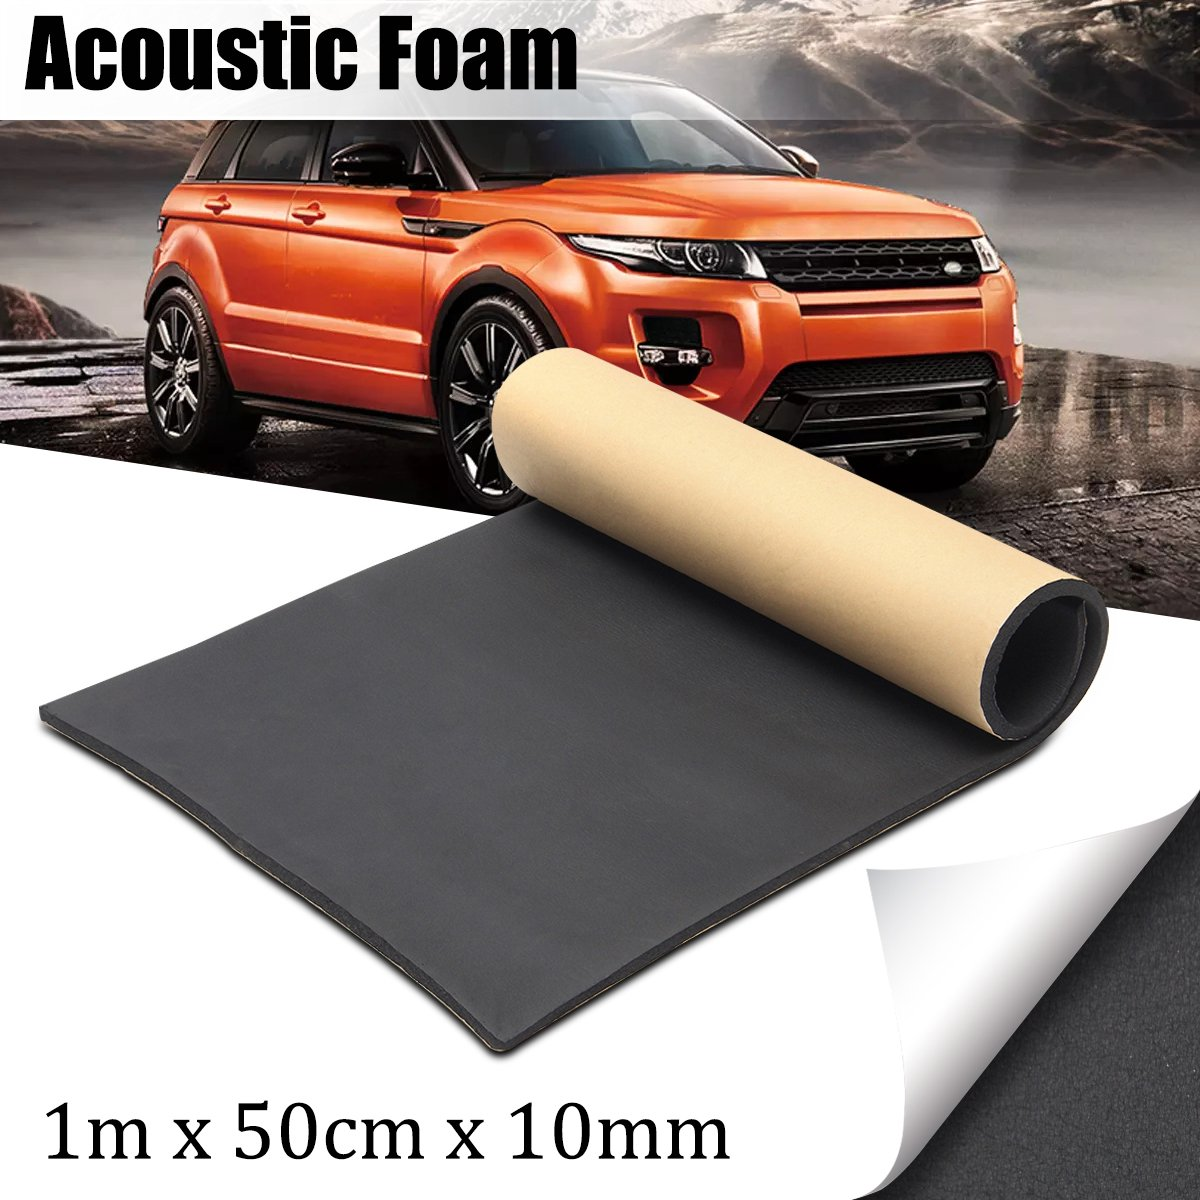 Jeteven 1m x 50cm High Density Foam Rubber Padding Roll Self Closed Cell Foam Waterproof Soundproof Insulation Thermal Foam Car Sound Deadening Mat 1m by Jeteven (Image #2)